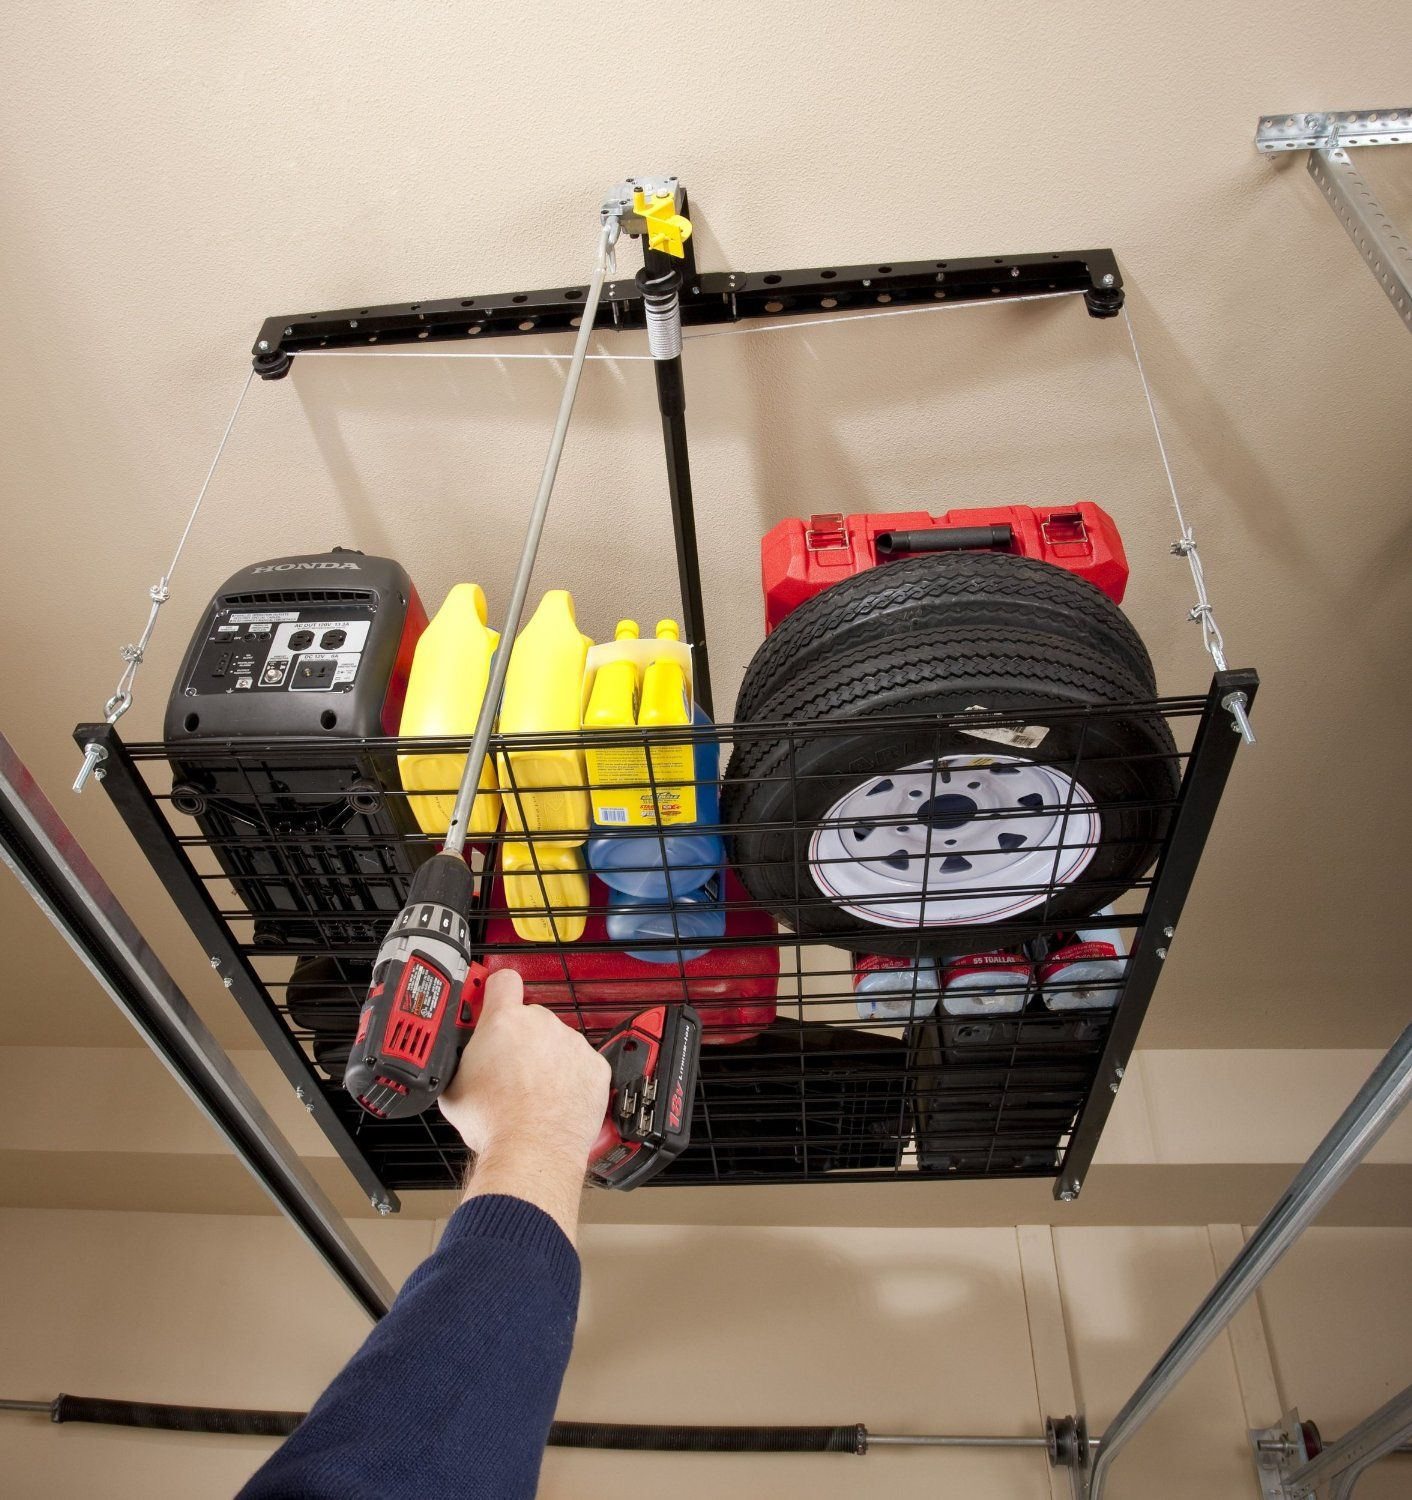 Jeep Roof Hoist: Amazon.com: Racor PHL-1R Pro HeavyLift 4-by-4-Foot Cable